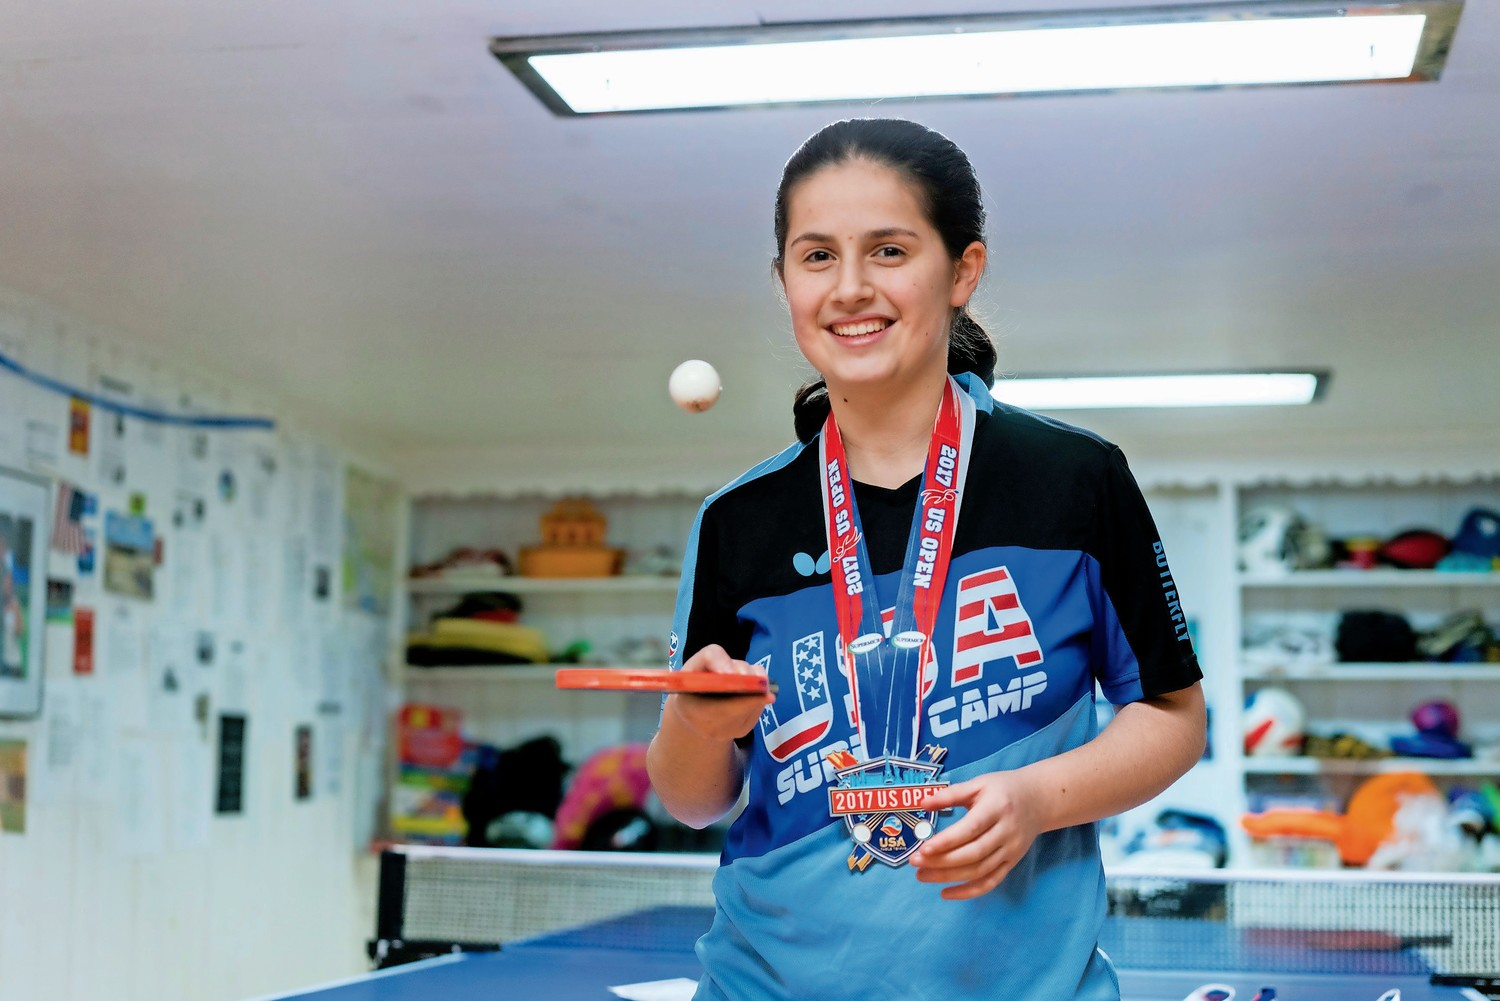 Estee Ackerman, 16, hopes to qualify for the 2020 Summer Olympic Games in Tokyo.